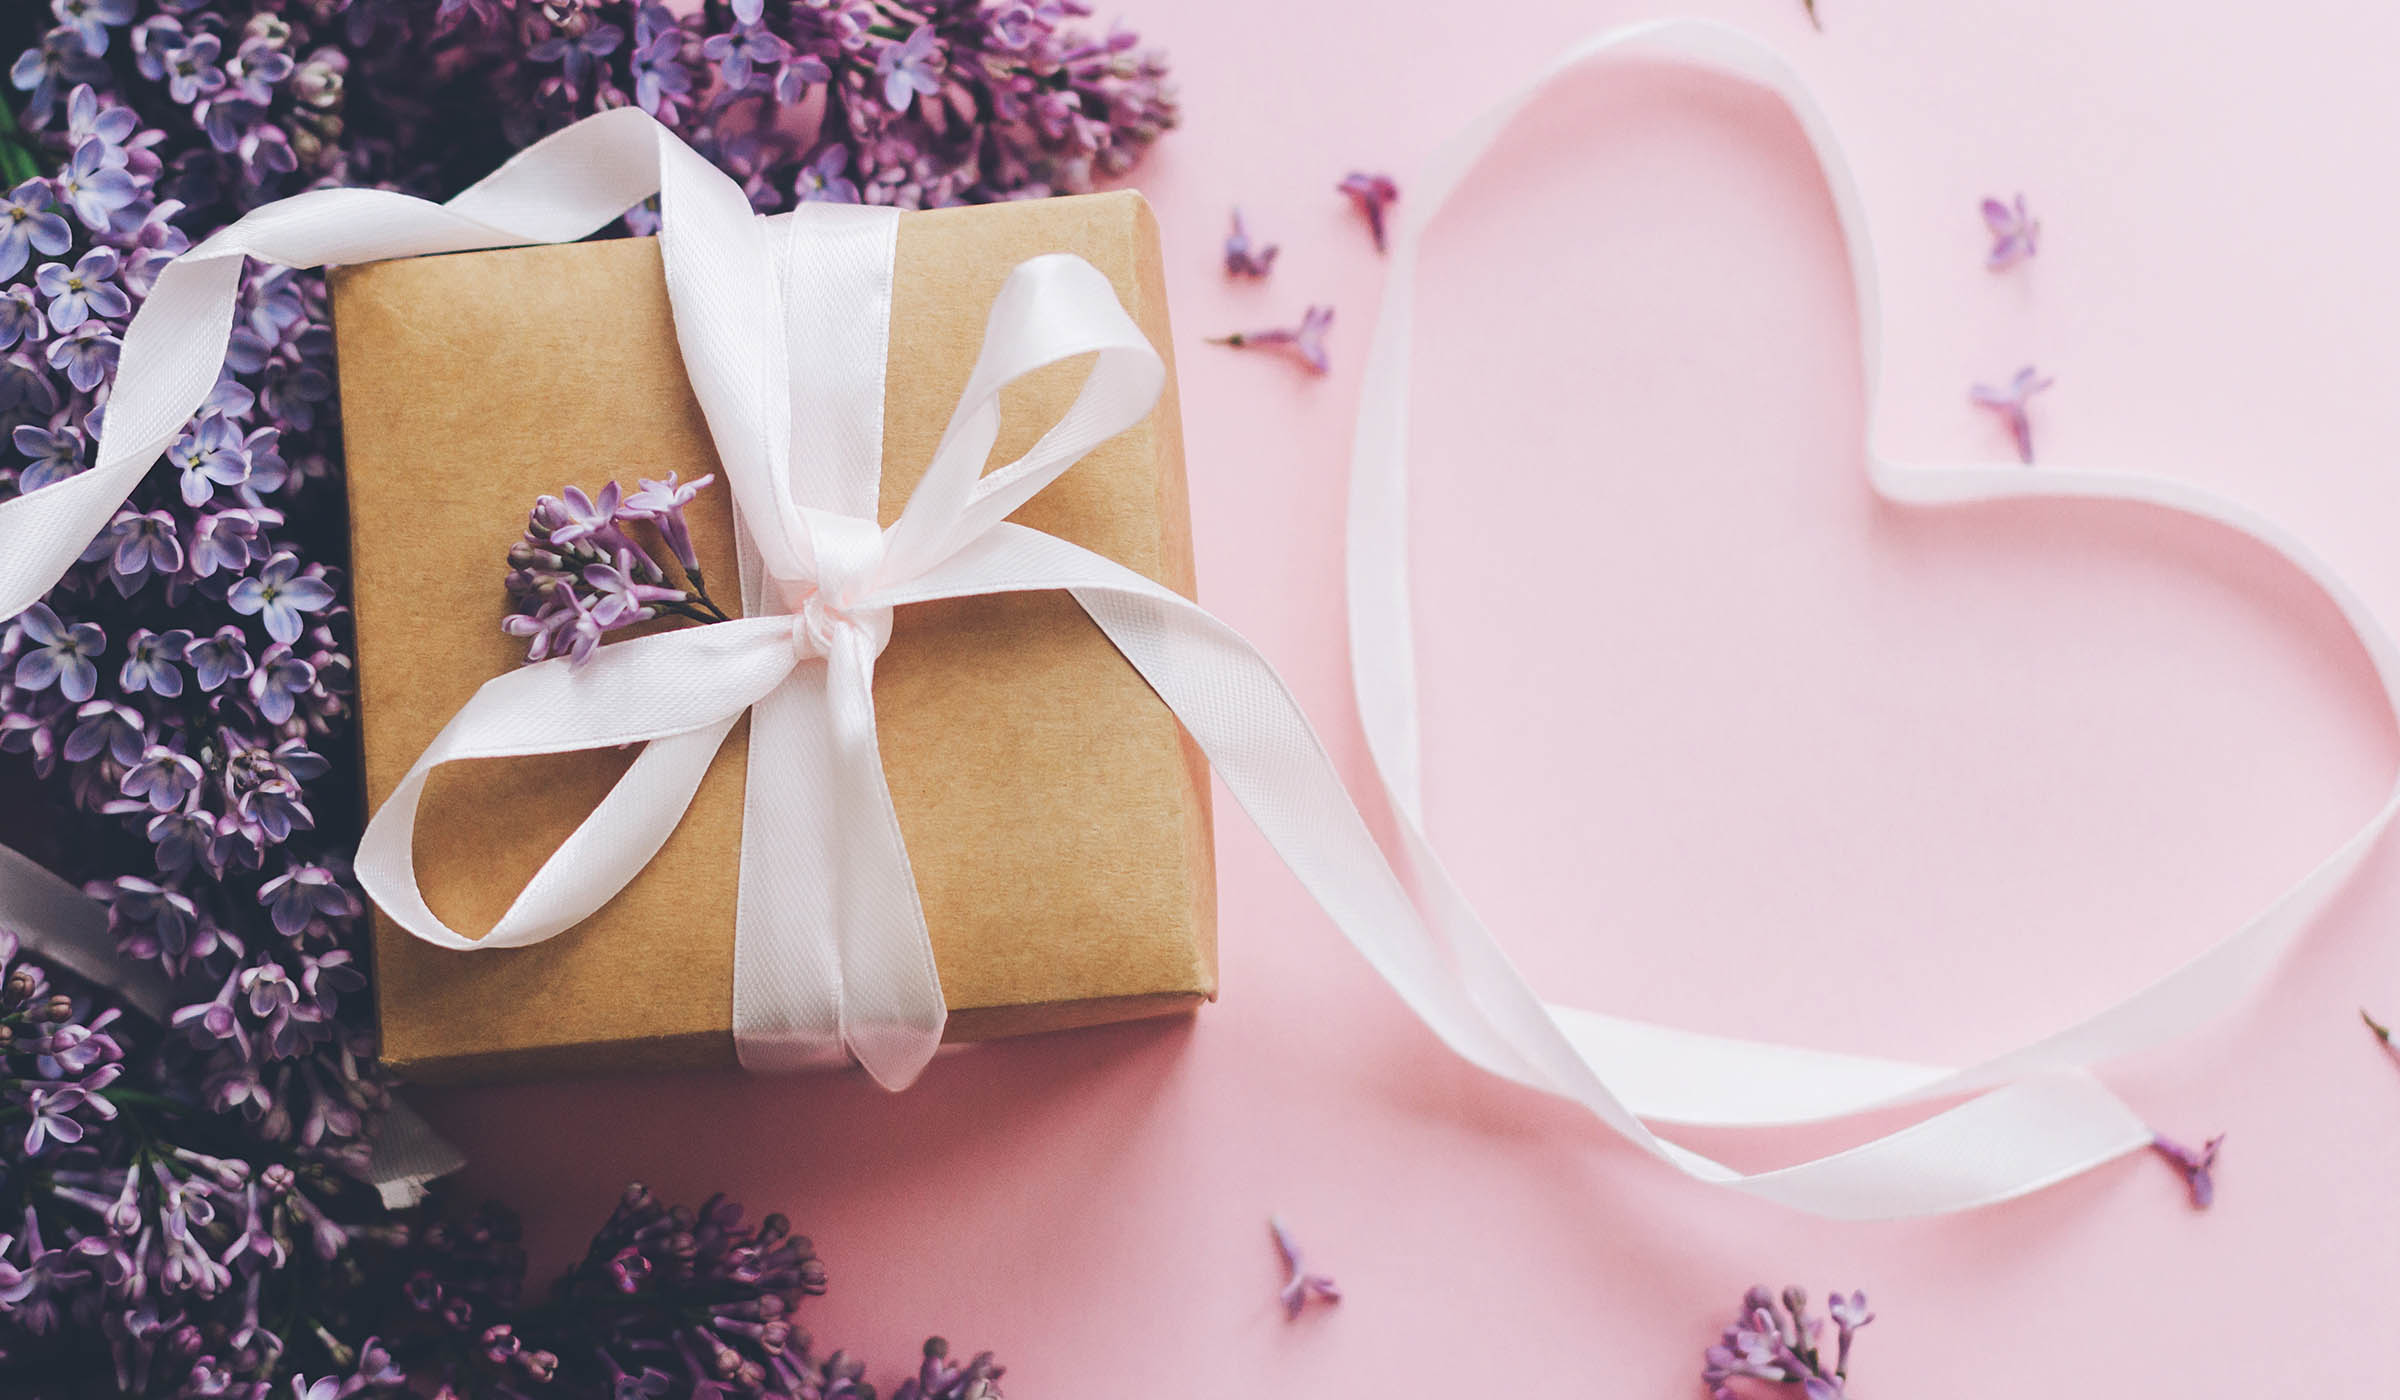 mothers day gift at willow stream spa